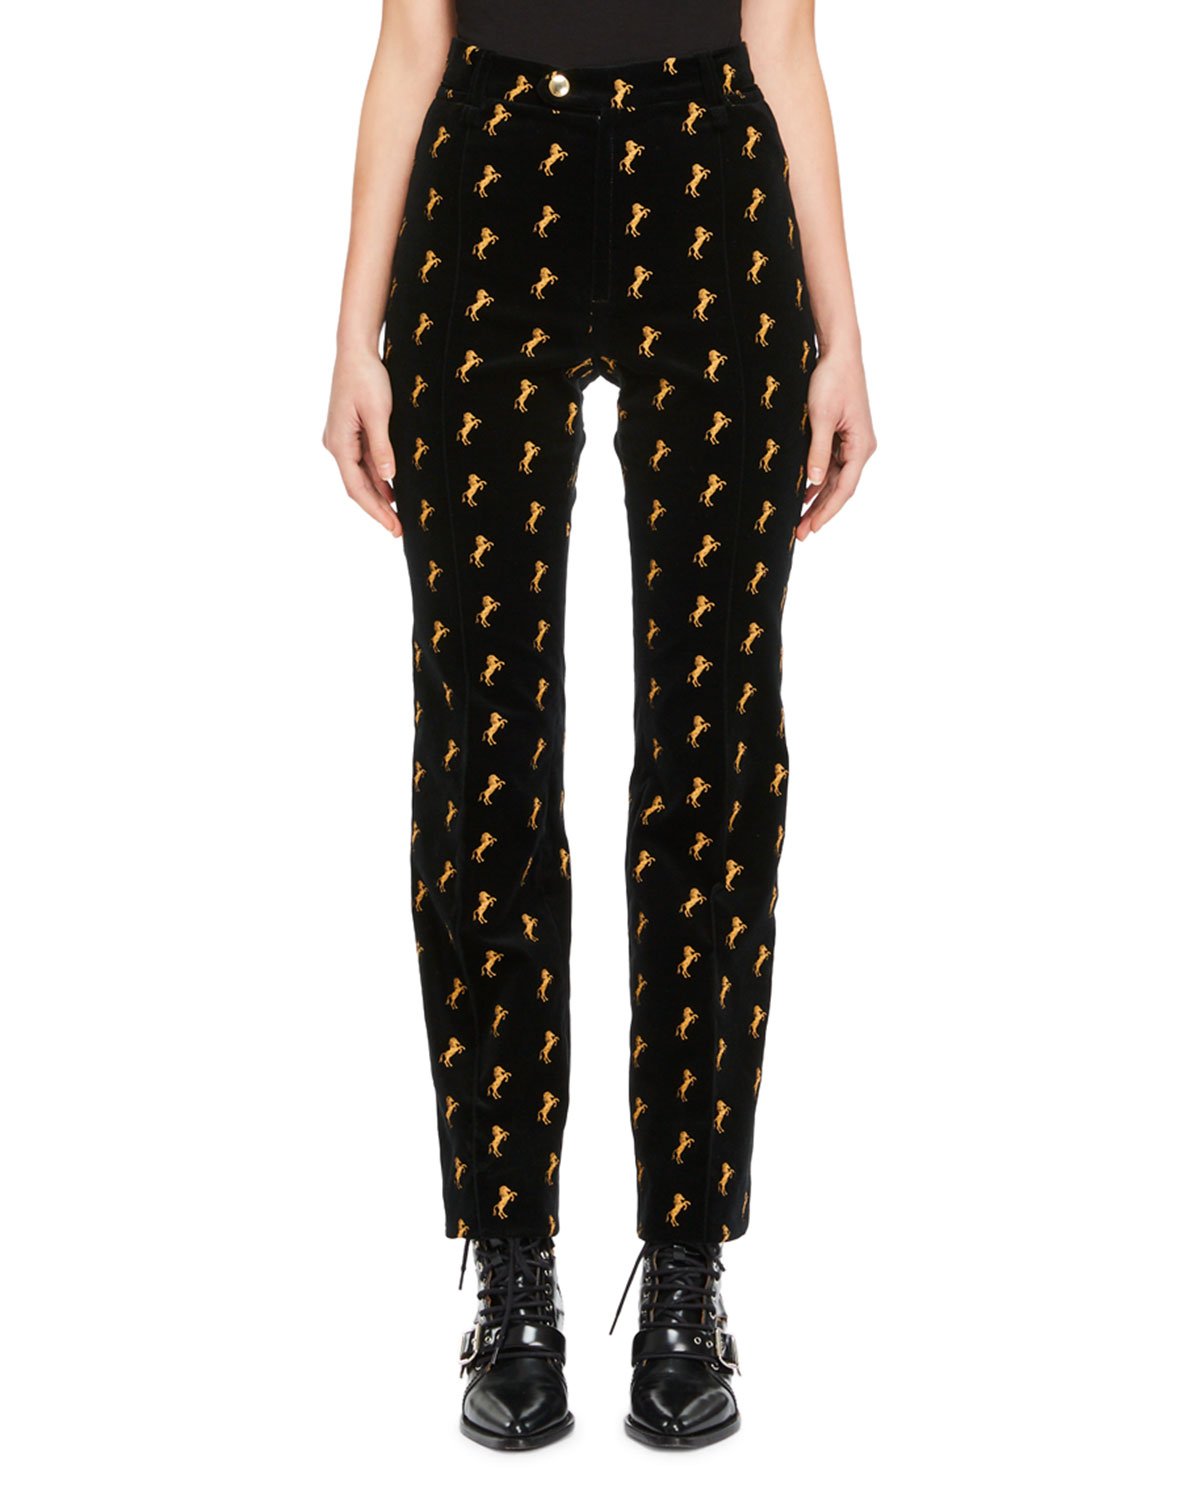 Outlet Finishline Buy Cheap Genuine Chloé Velvet Mid-Rise Pants Outlet With Paypal Order Online wnBE0